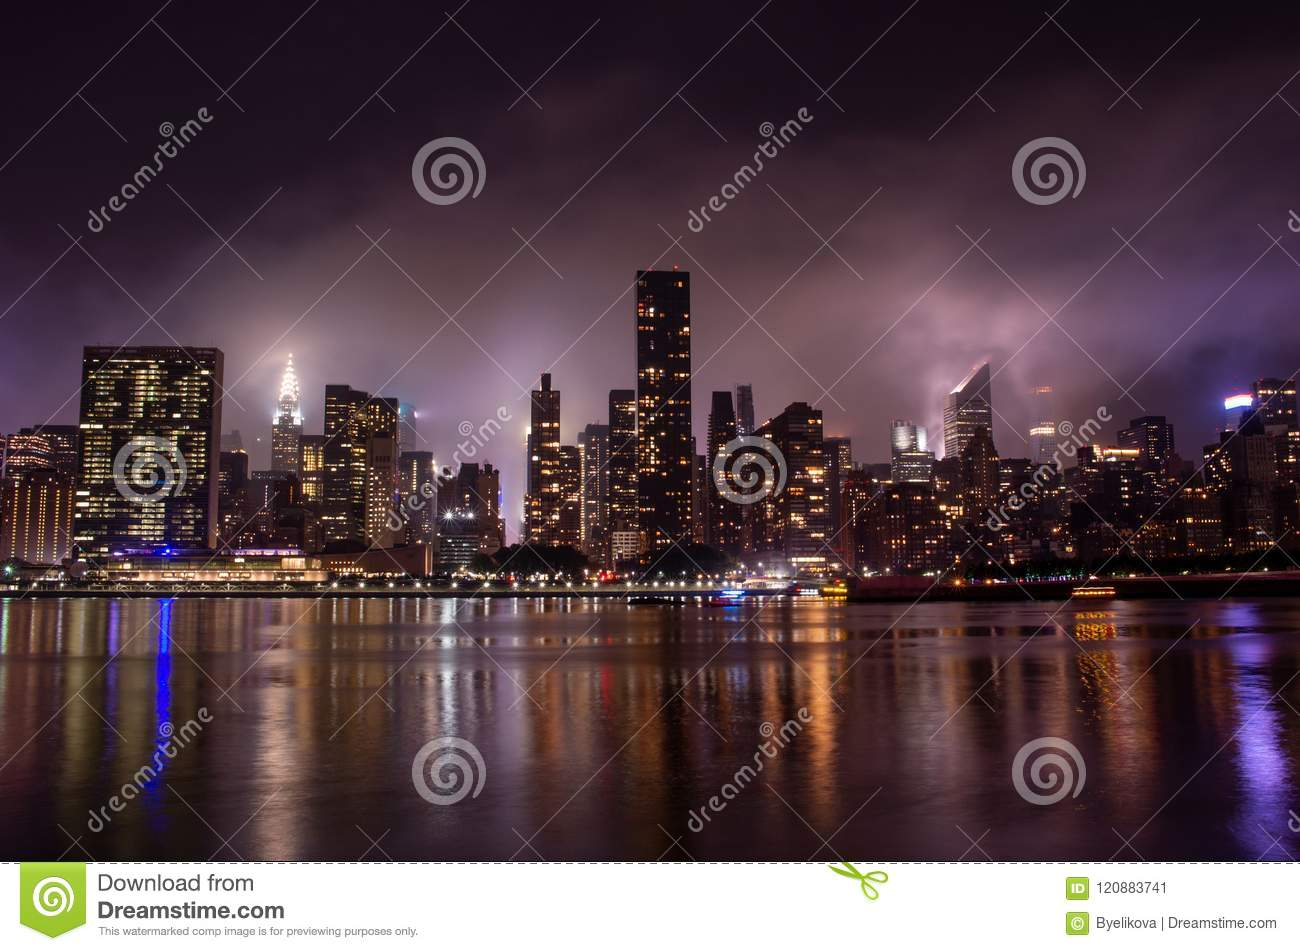 Manhattan skyline at night with reflections, NYC, USA.